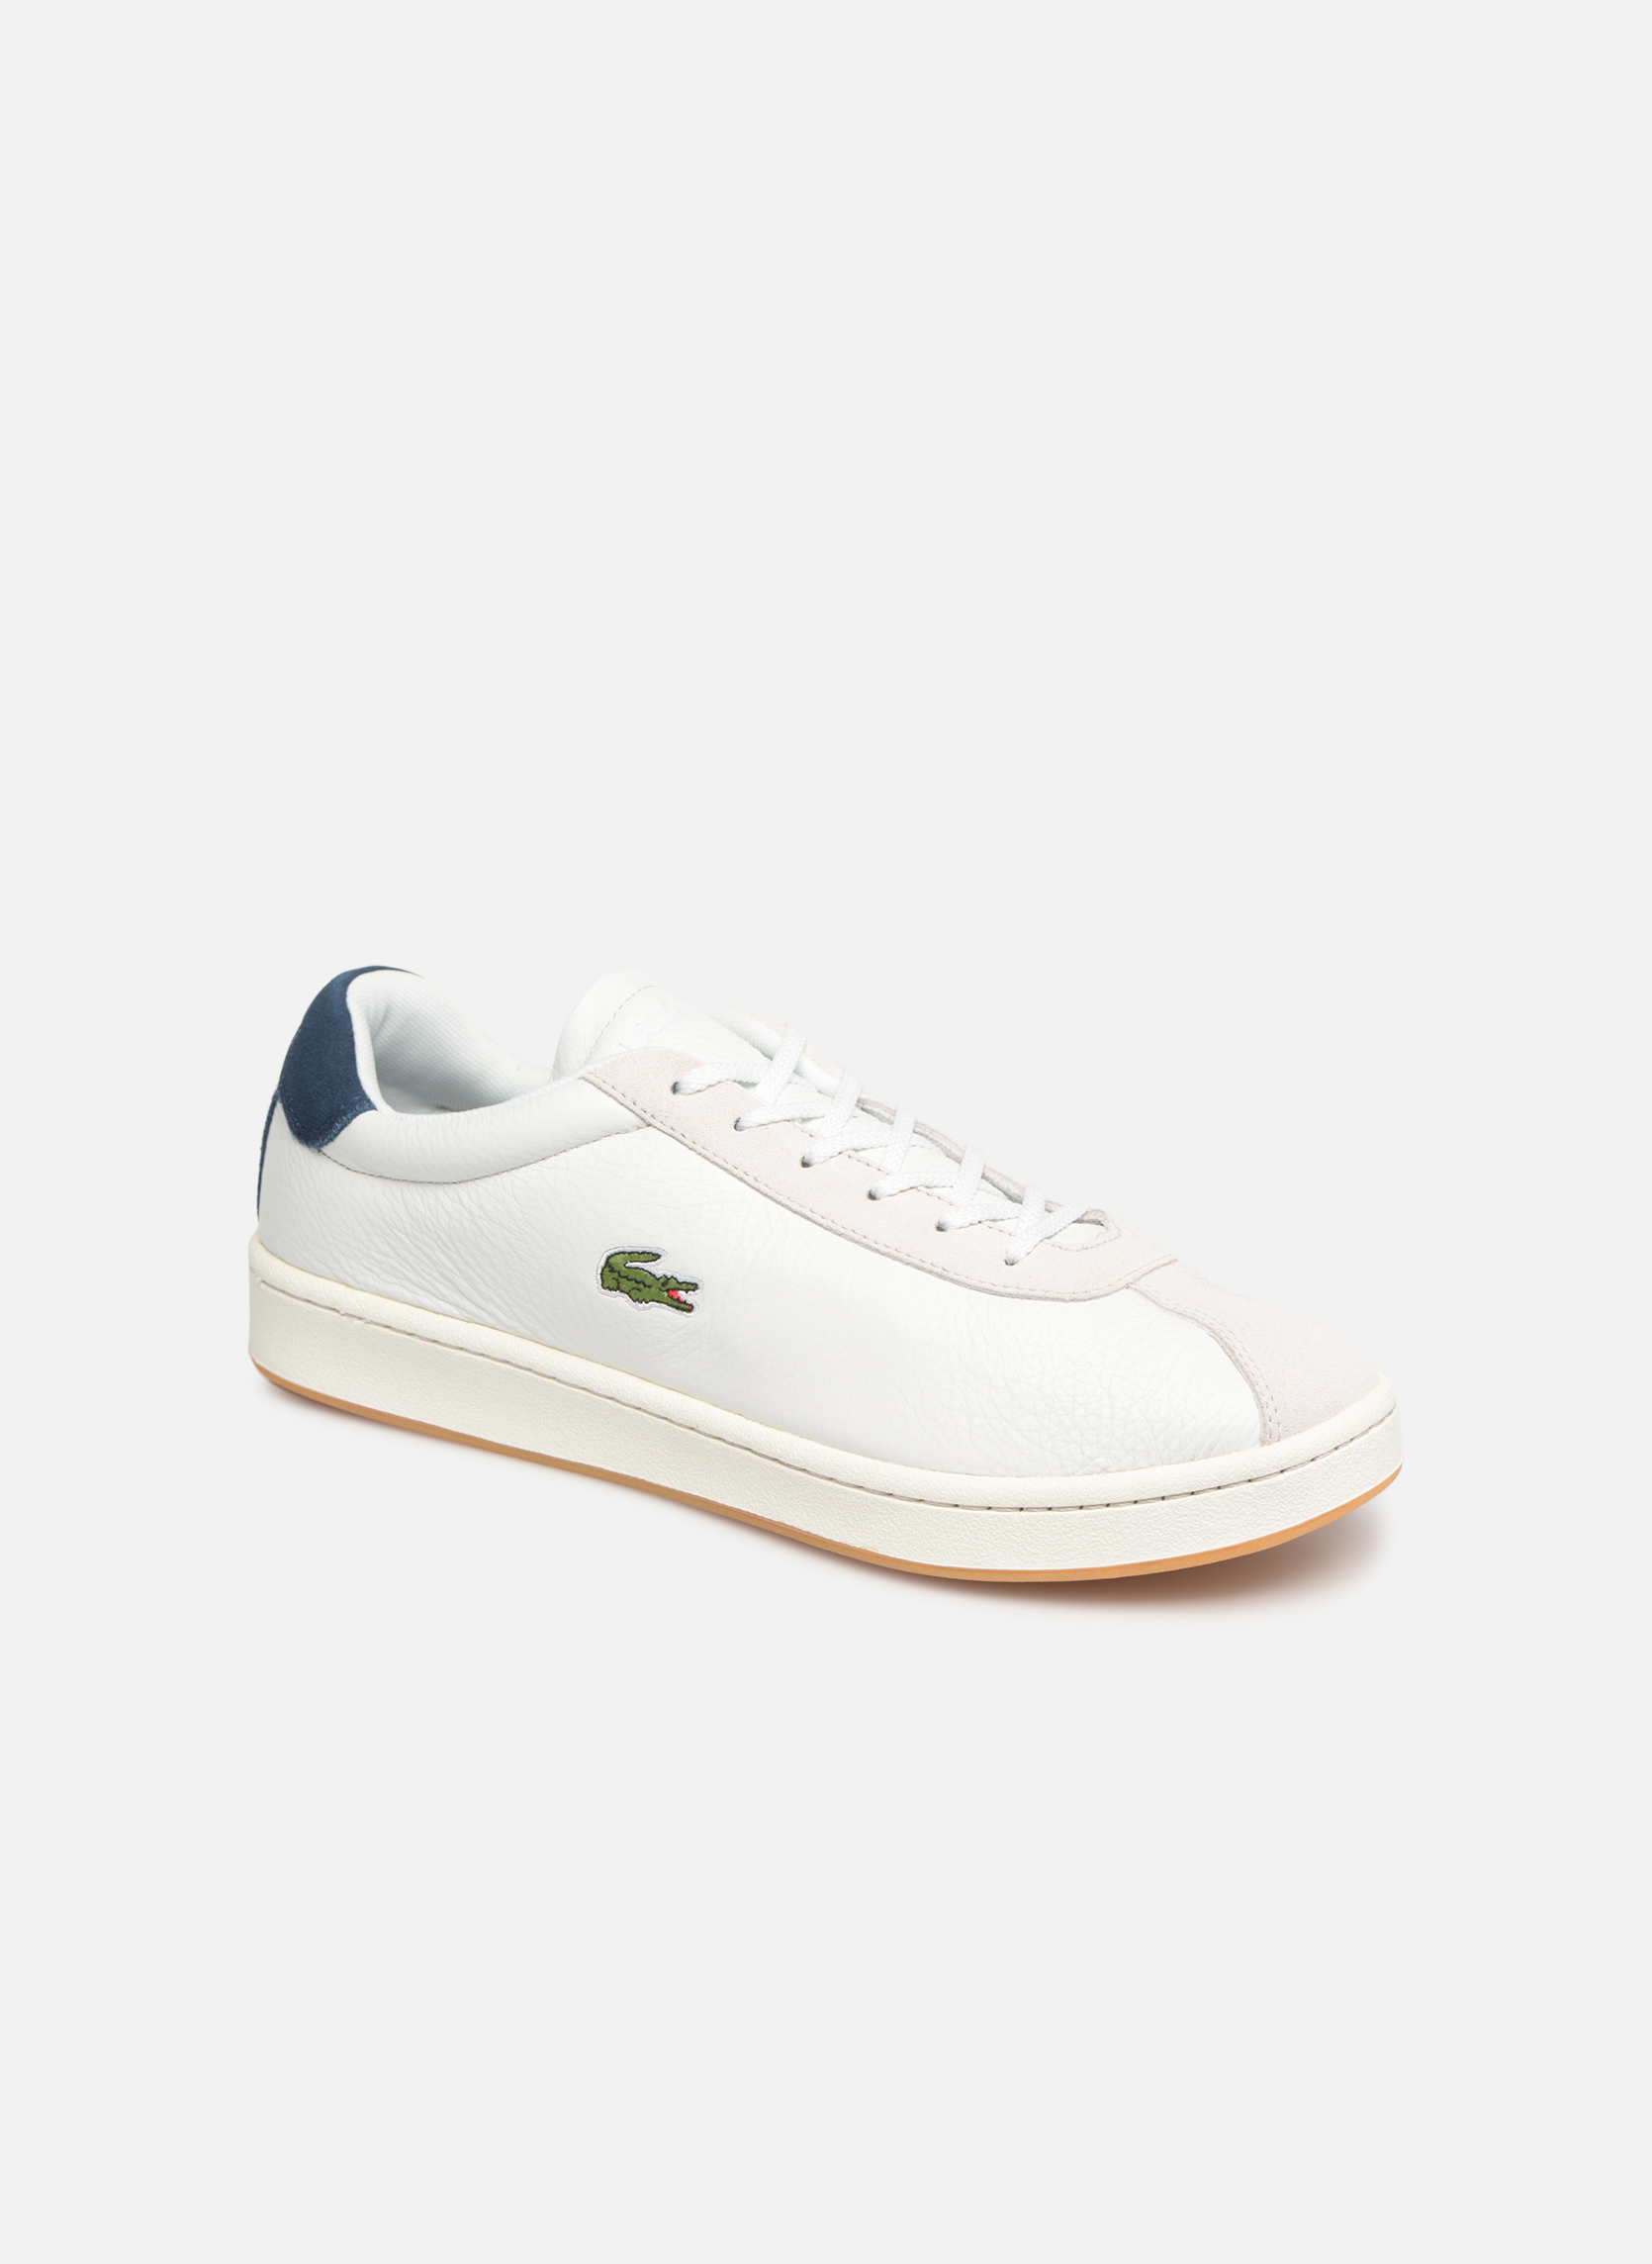 Sneakers Masters 119 3 Sma by Lacoste